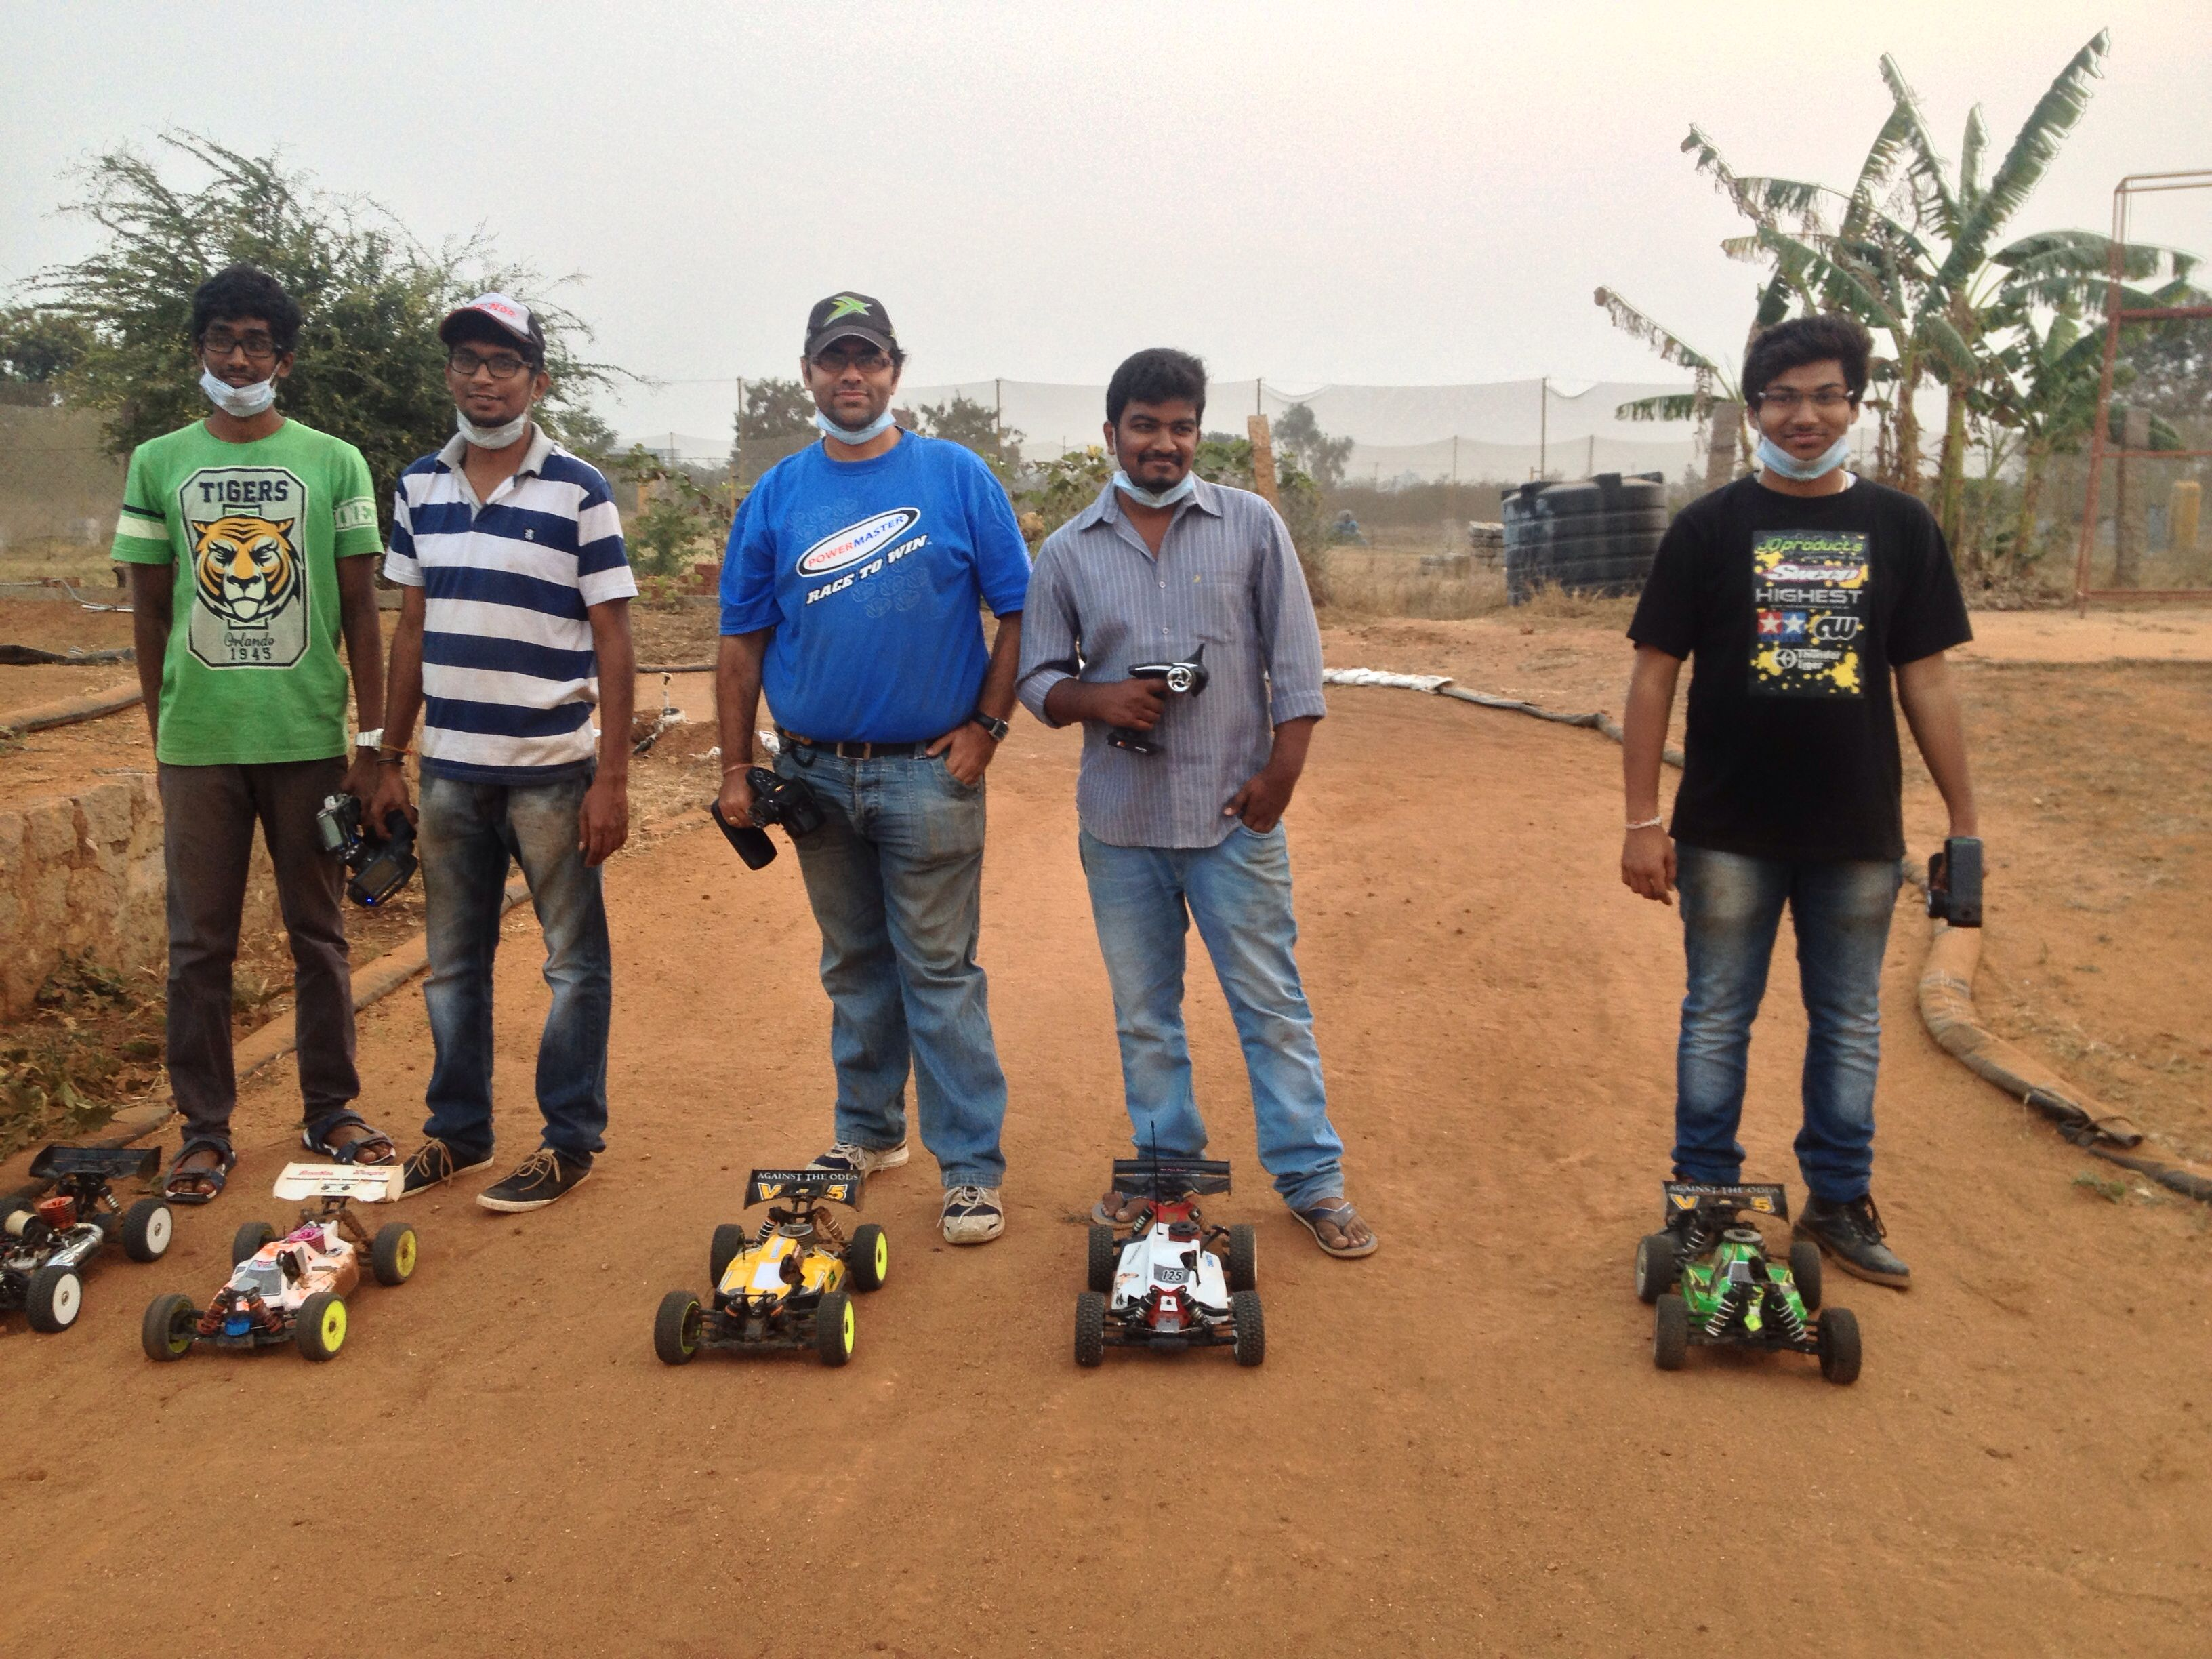 Axles Raceway 2 in, Season 2, Seasons